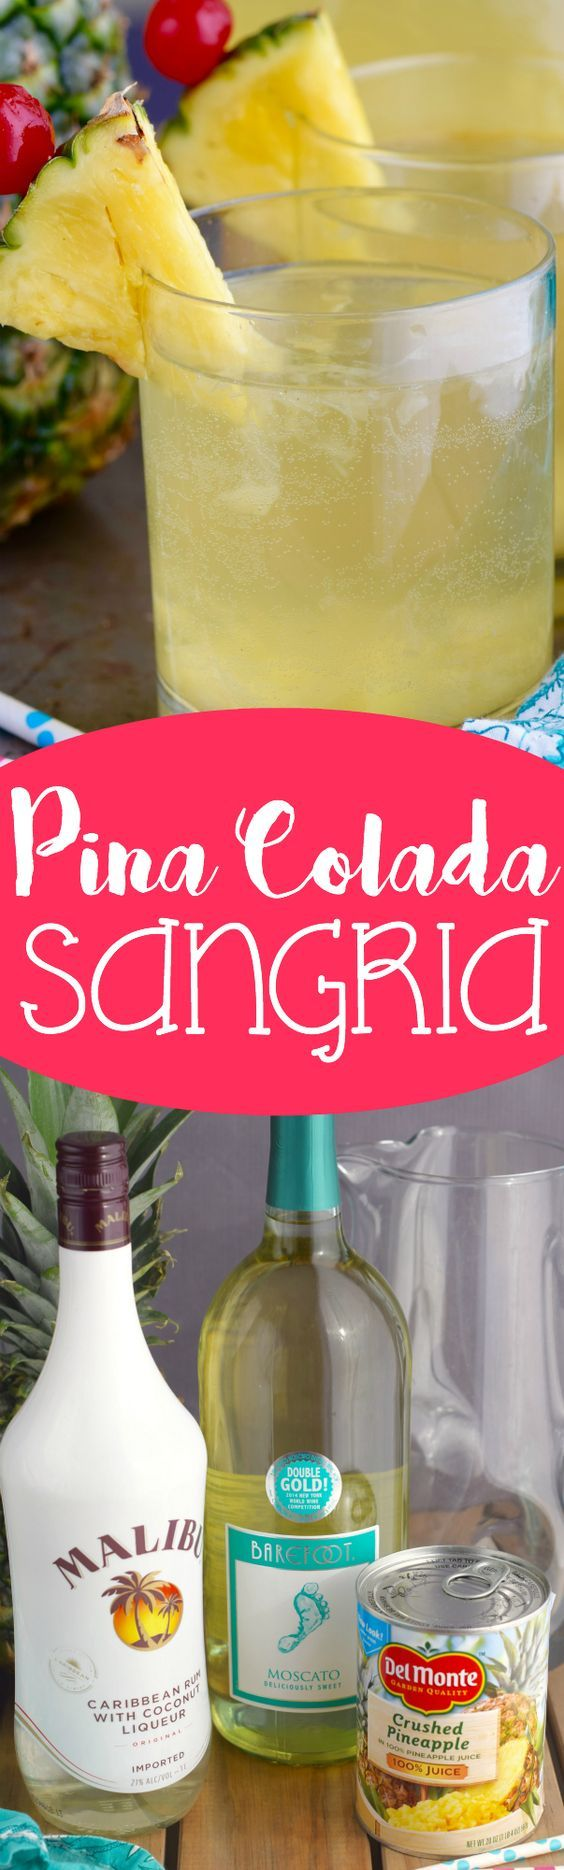 This Pina Colada Sangria literally takes less than five minutes to throw together, but is so insanely delicious that you'll want to make at least two batches, since your party guests will go nuts for it.: